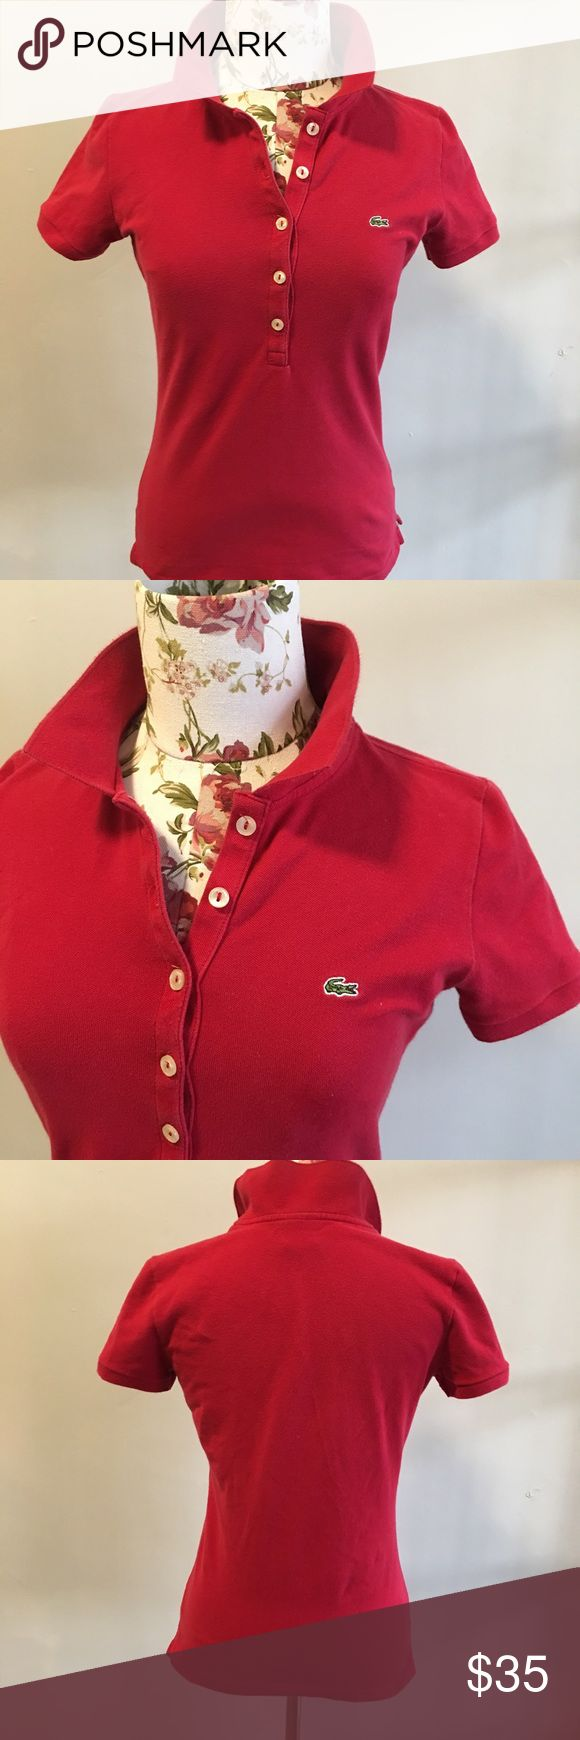 LACOSTE red polo Classic red polo by Lacoste- pulled size chart to show size comparison- EUC- last few photos are stock photos from online as this is too small for me to model- Betty is a size 4-6 for sizing reference as well Lacoste Tops